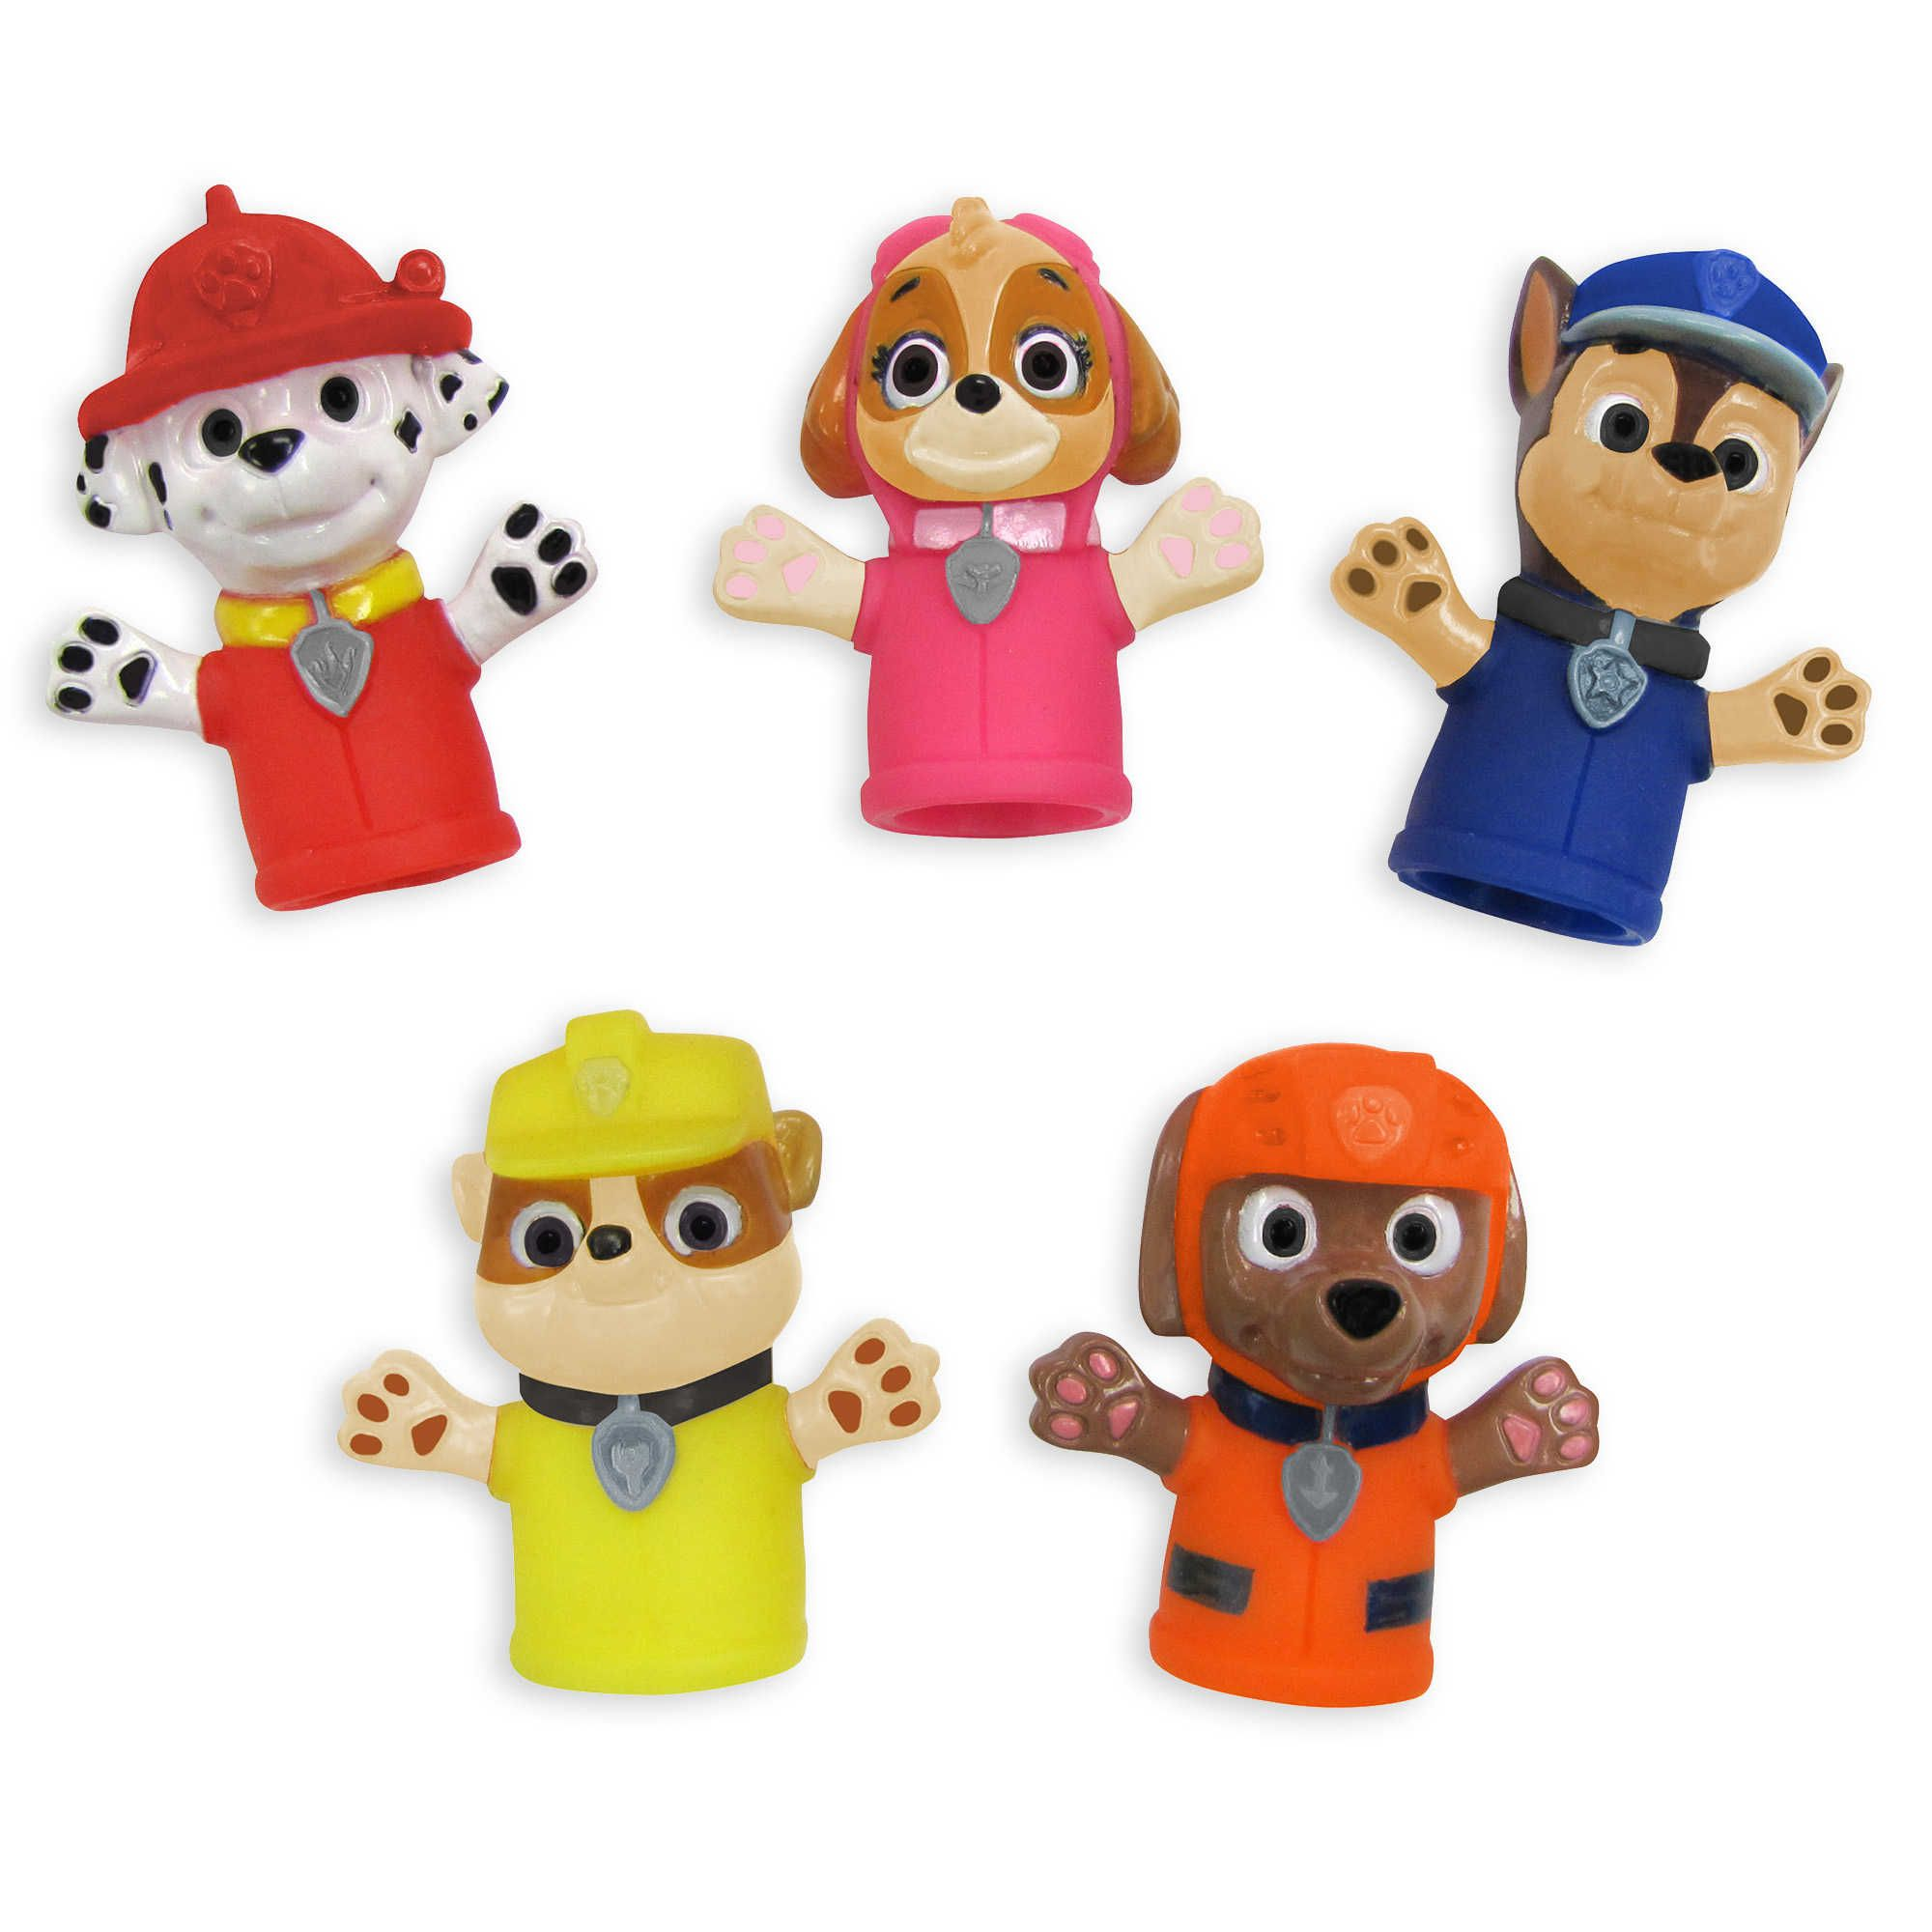 32aaa70a81 Nickelodeon™ PAW Patrol Finger Puppets